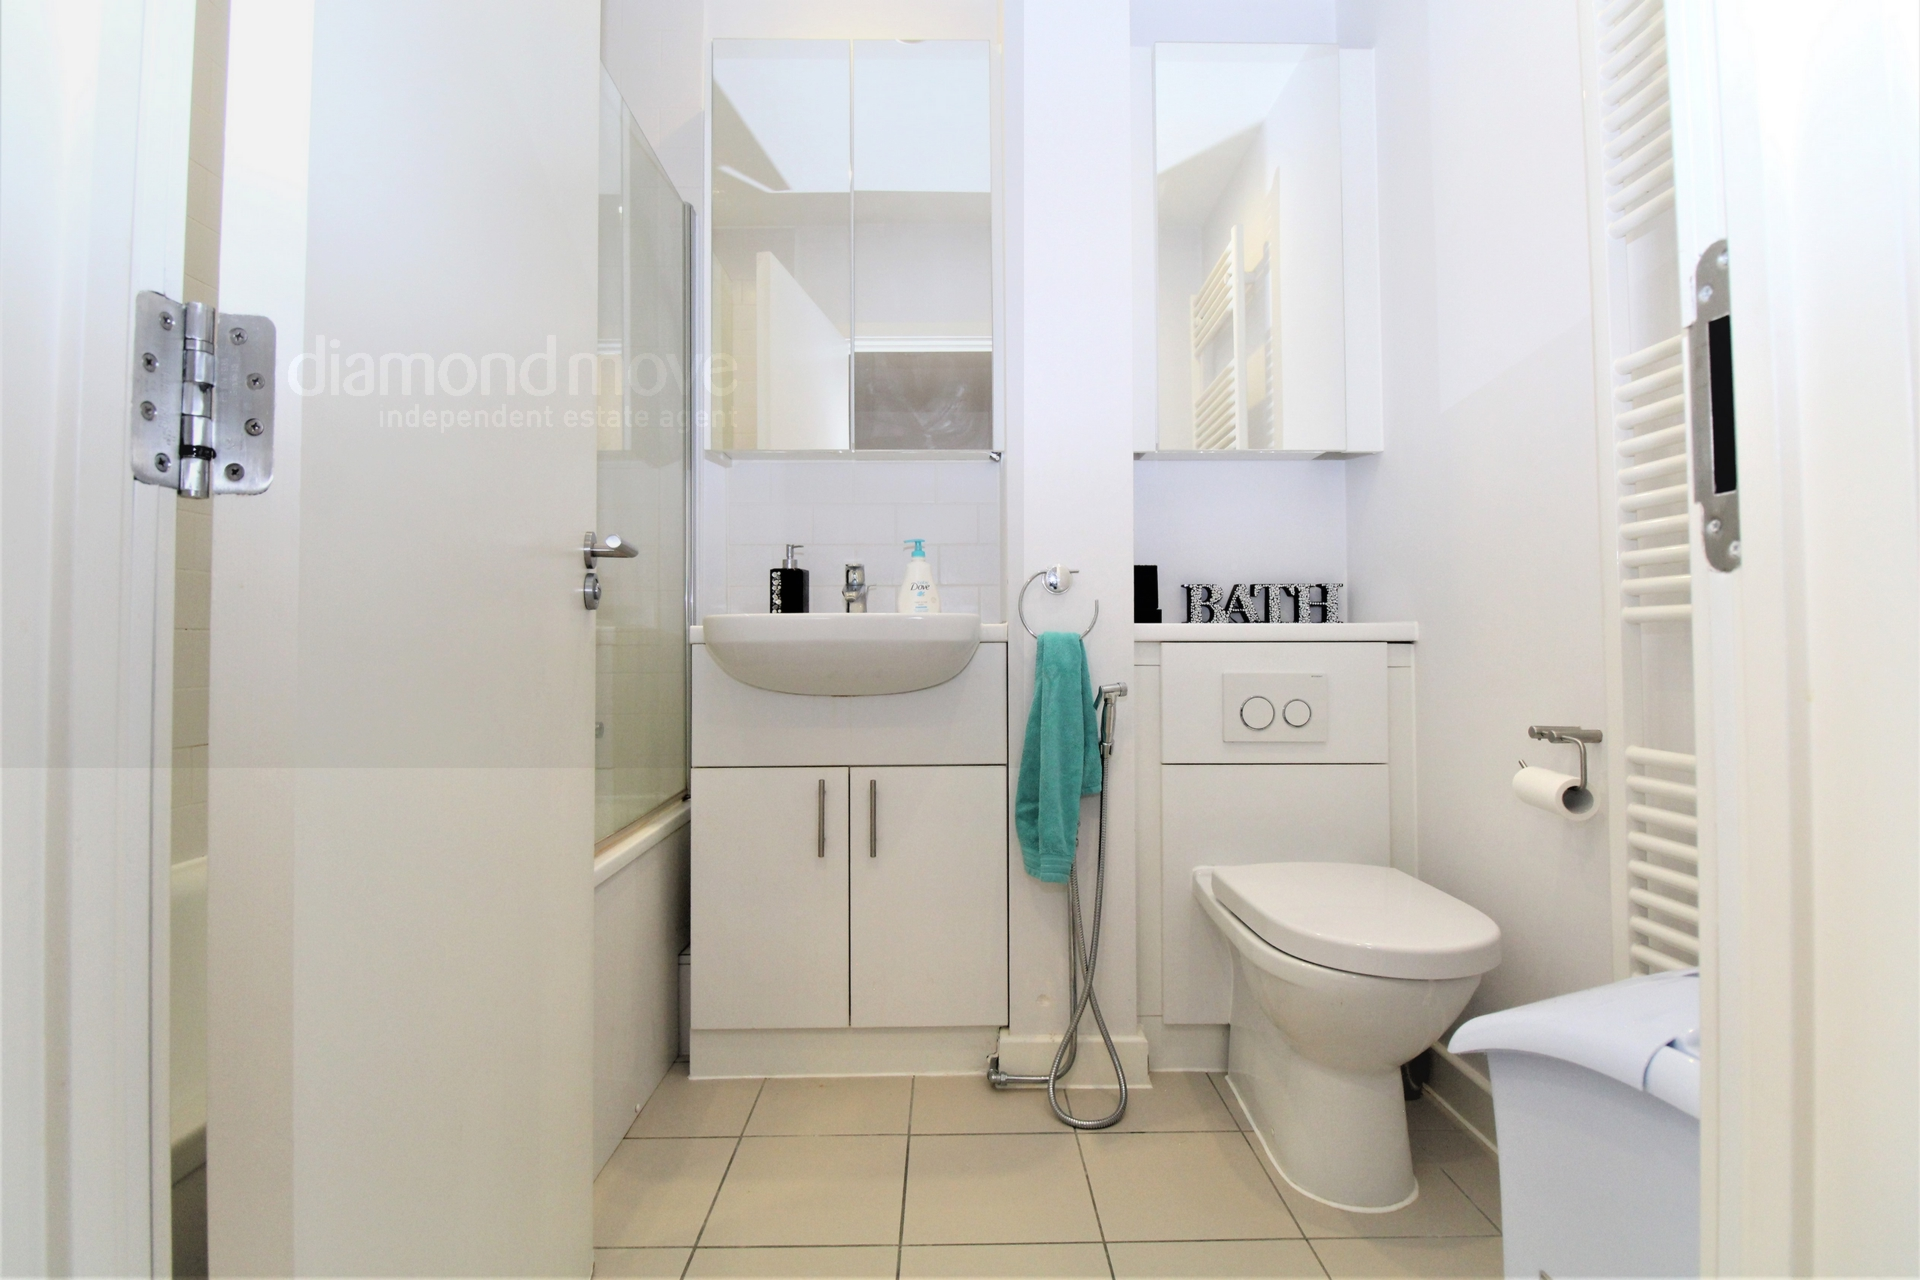 3rd Floor Bath/Wc -